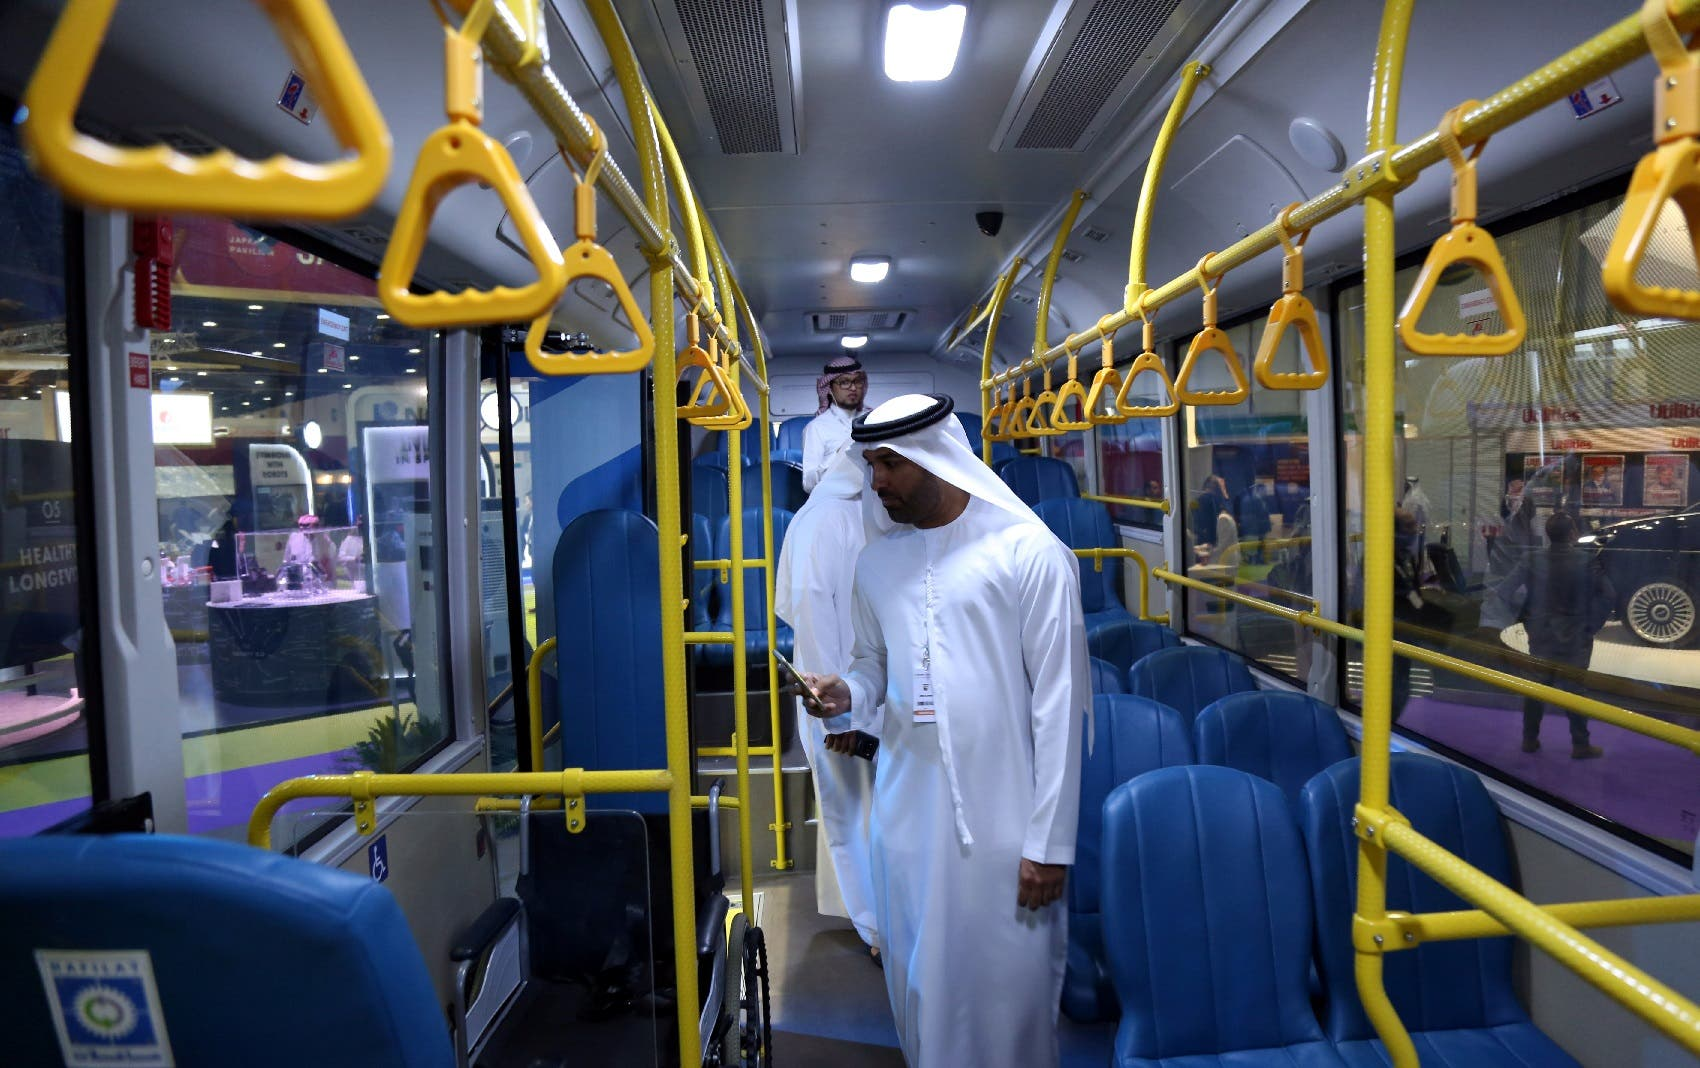 Visitors take a look at the interior of the ECO Bus manufactured by Masdar during the Abu Dhabi Sustainability Week, in Abu Dhabi, UAE, January 17, 2018. (File photo: Reuters)